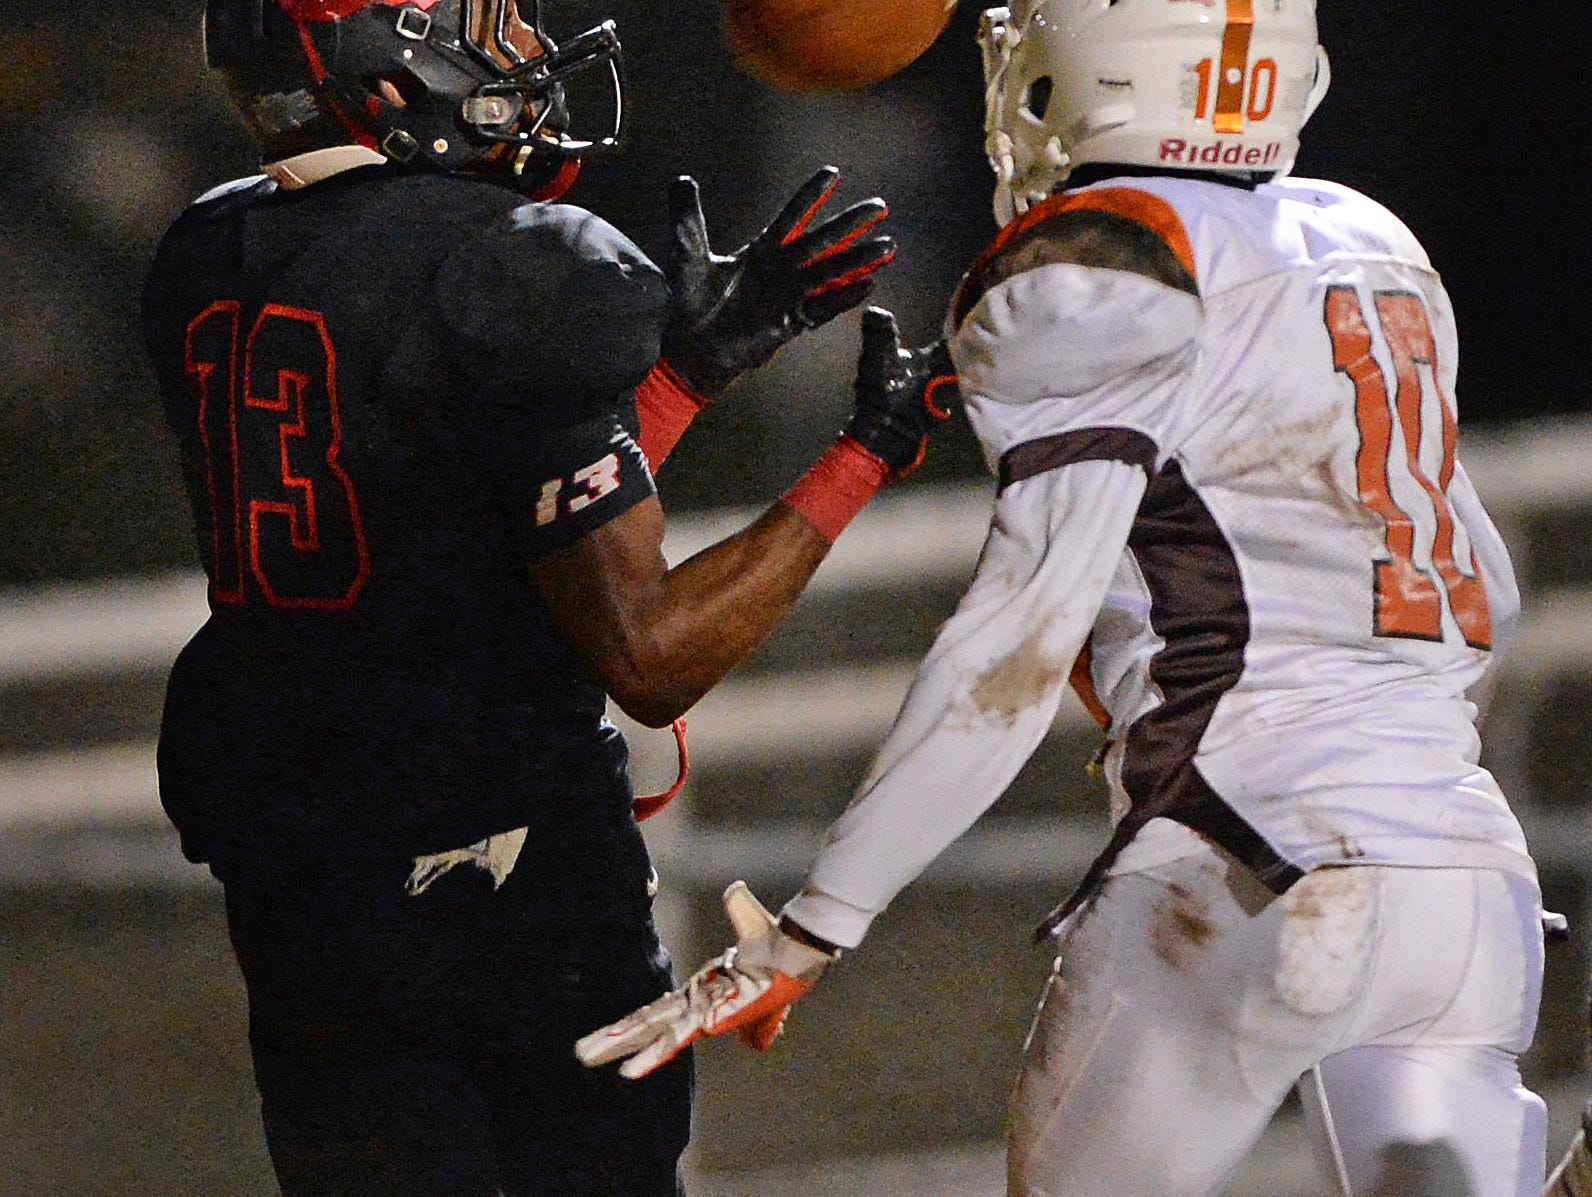 Hillcrest's Brandon Peppers (13) catches a TD past Mauldin's Winston Howard (10) during the first round of the Class AAAA Division-I playoffs Friday, November 20, 2015 at Hillcrest High.